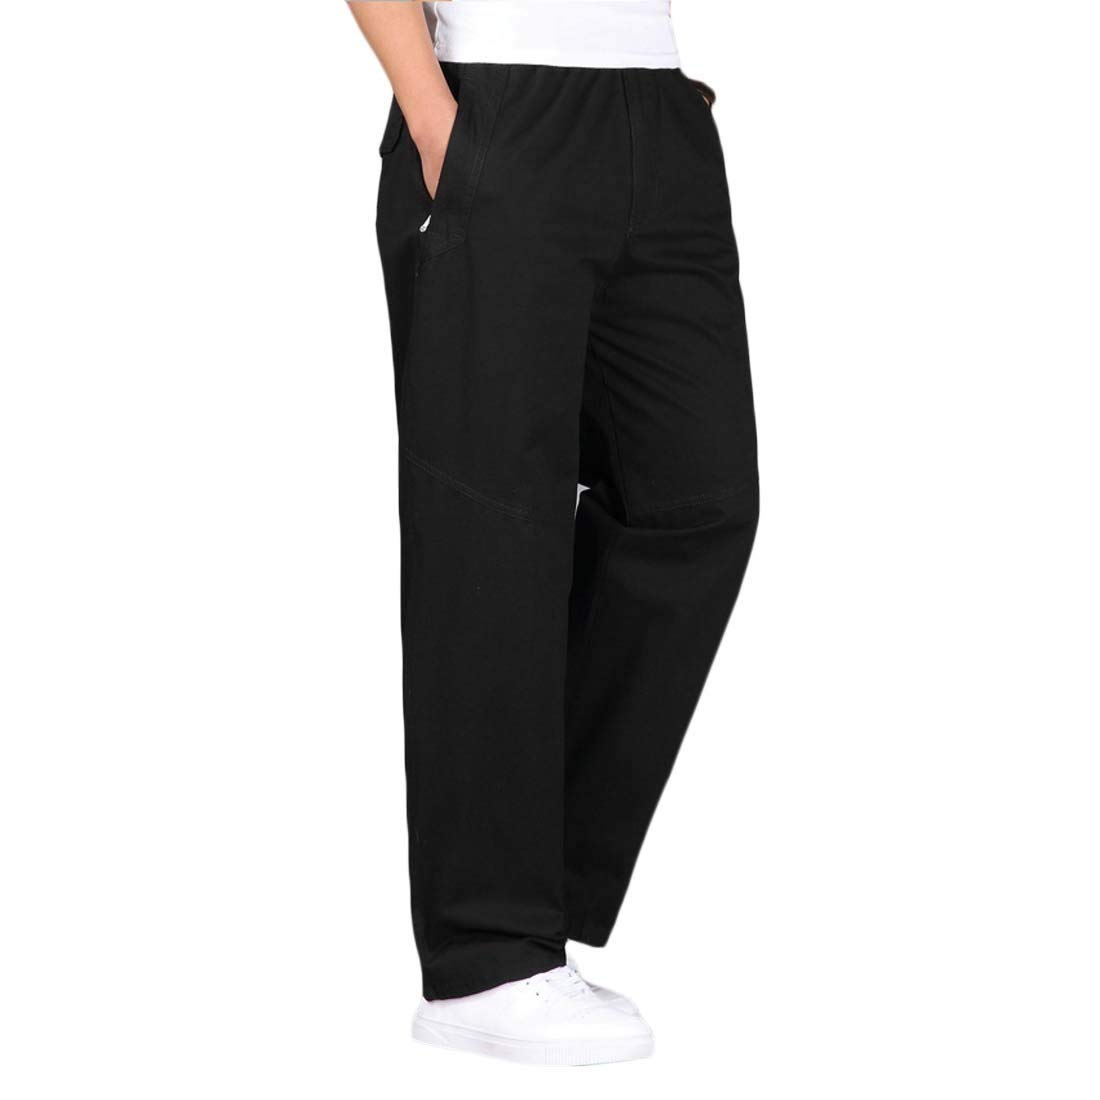 pipigo Mens Casual Plus Size Solid Cotton Elastic Waist Straight Leg Pants Trousers 4 3XL